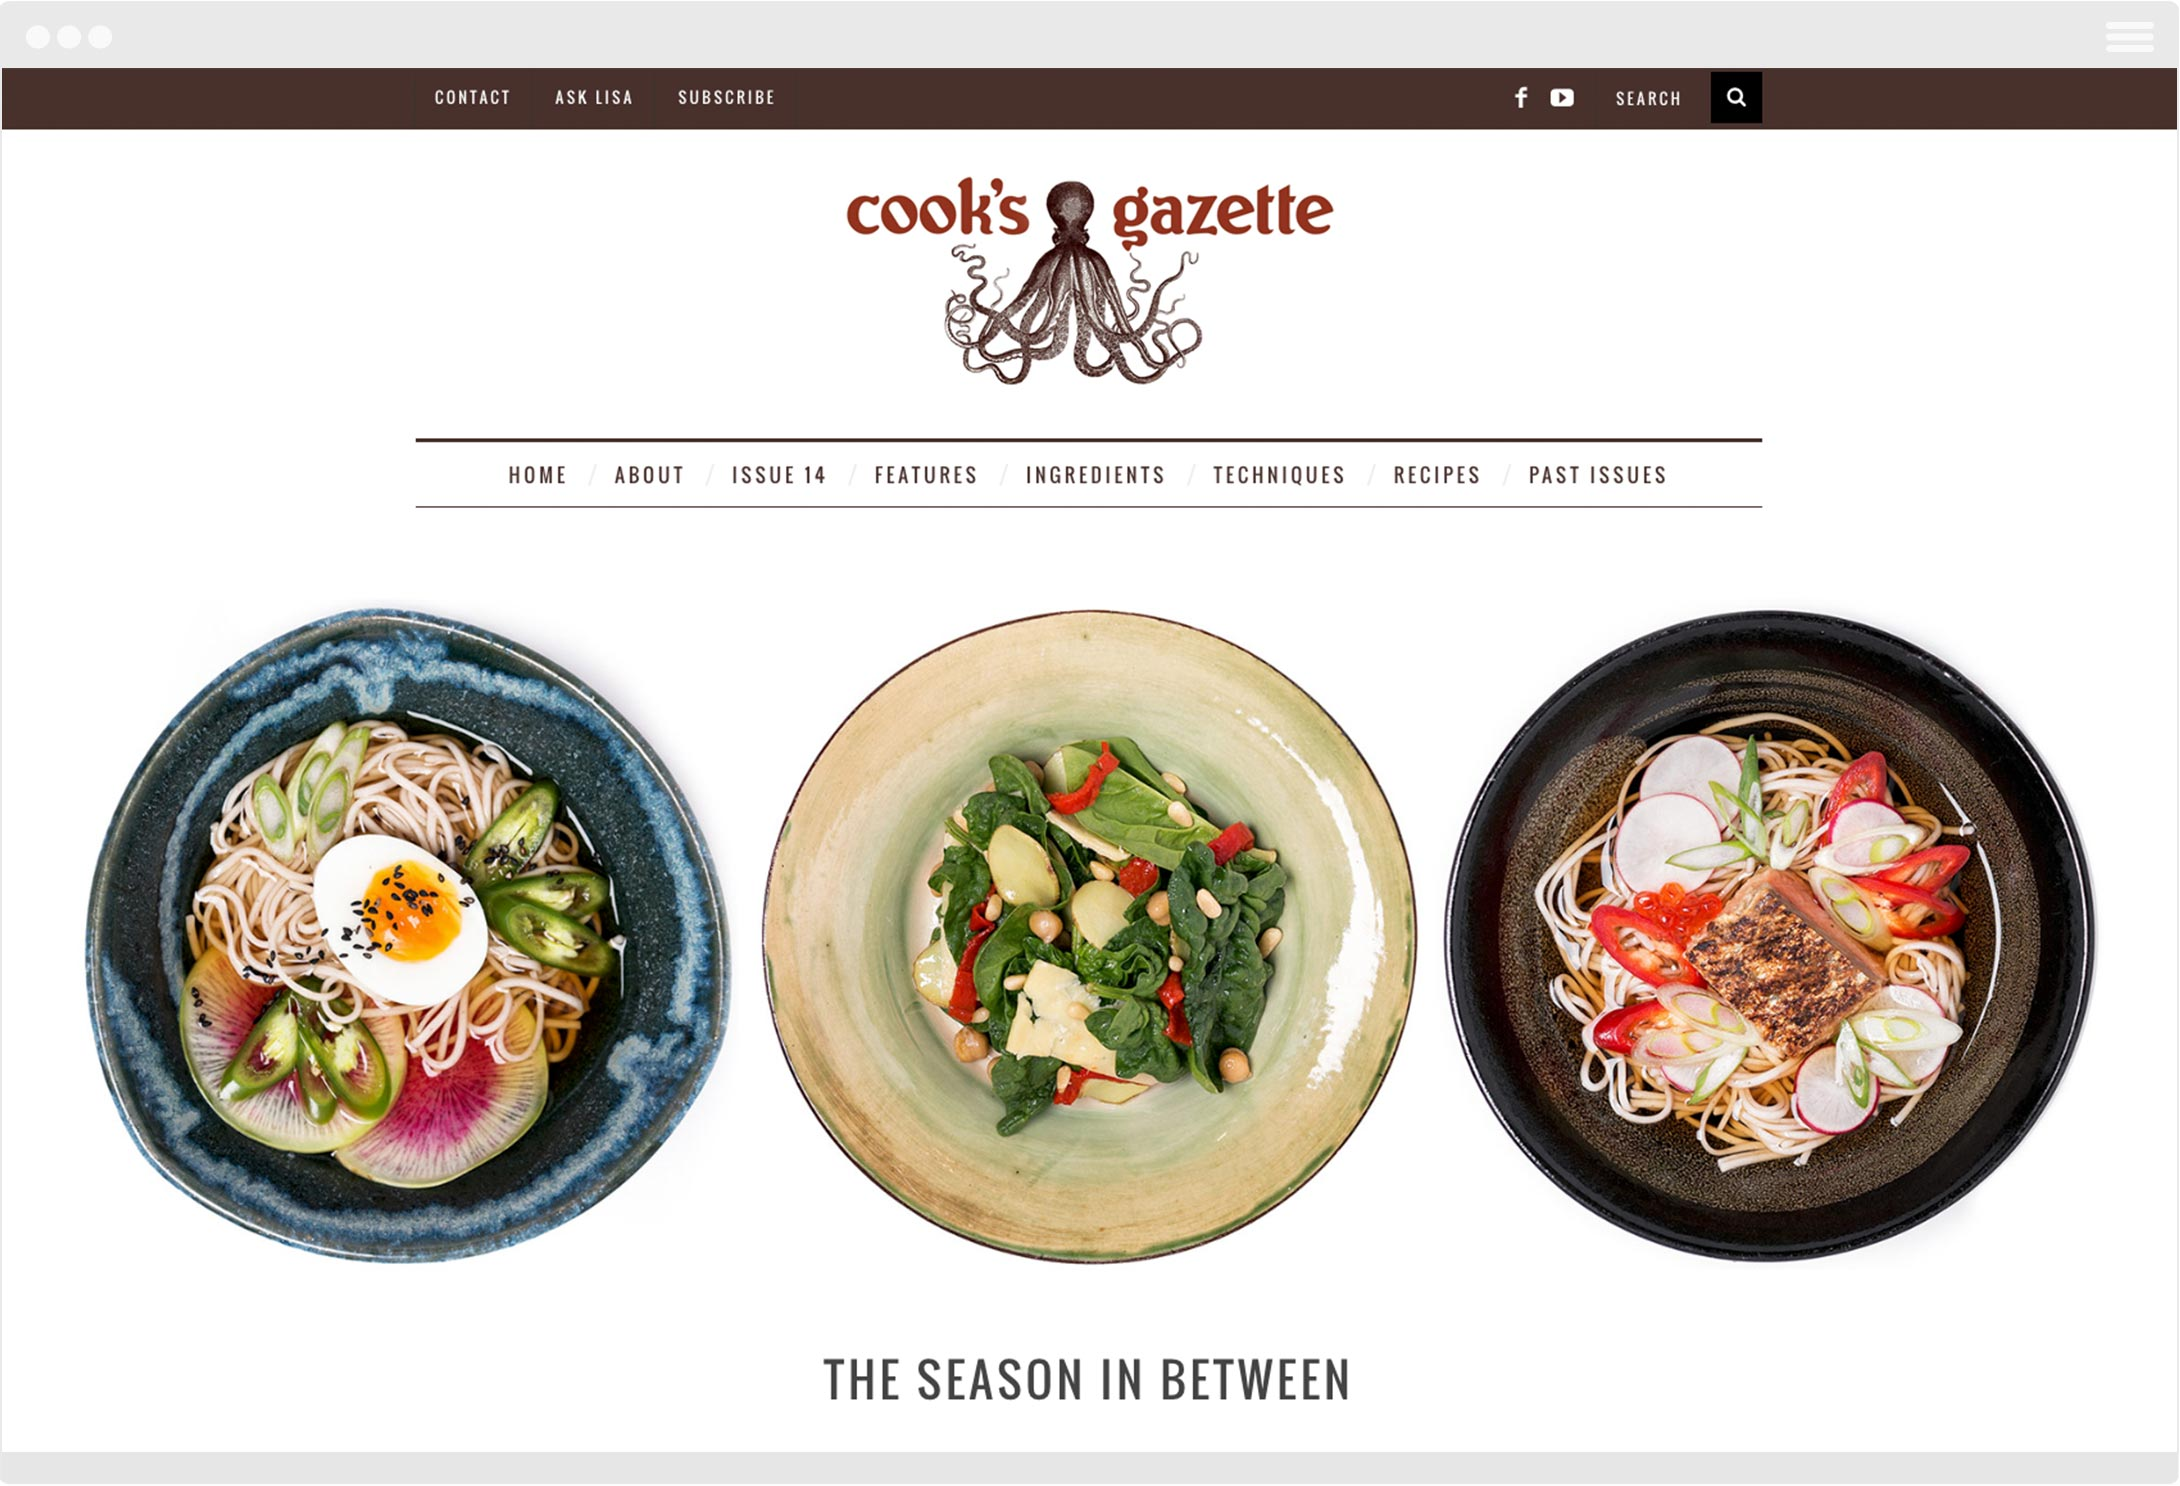 Cook's Gazette website